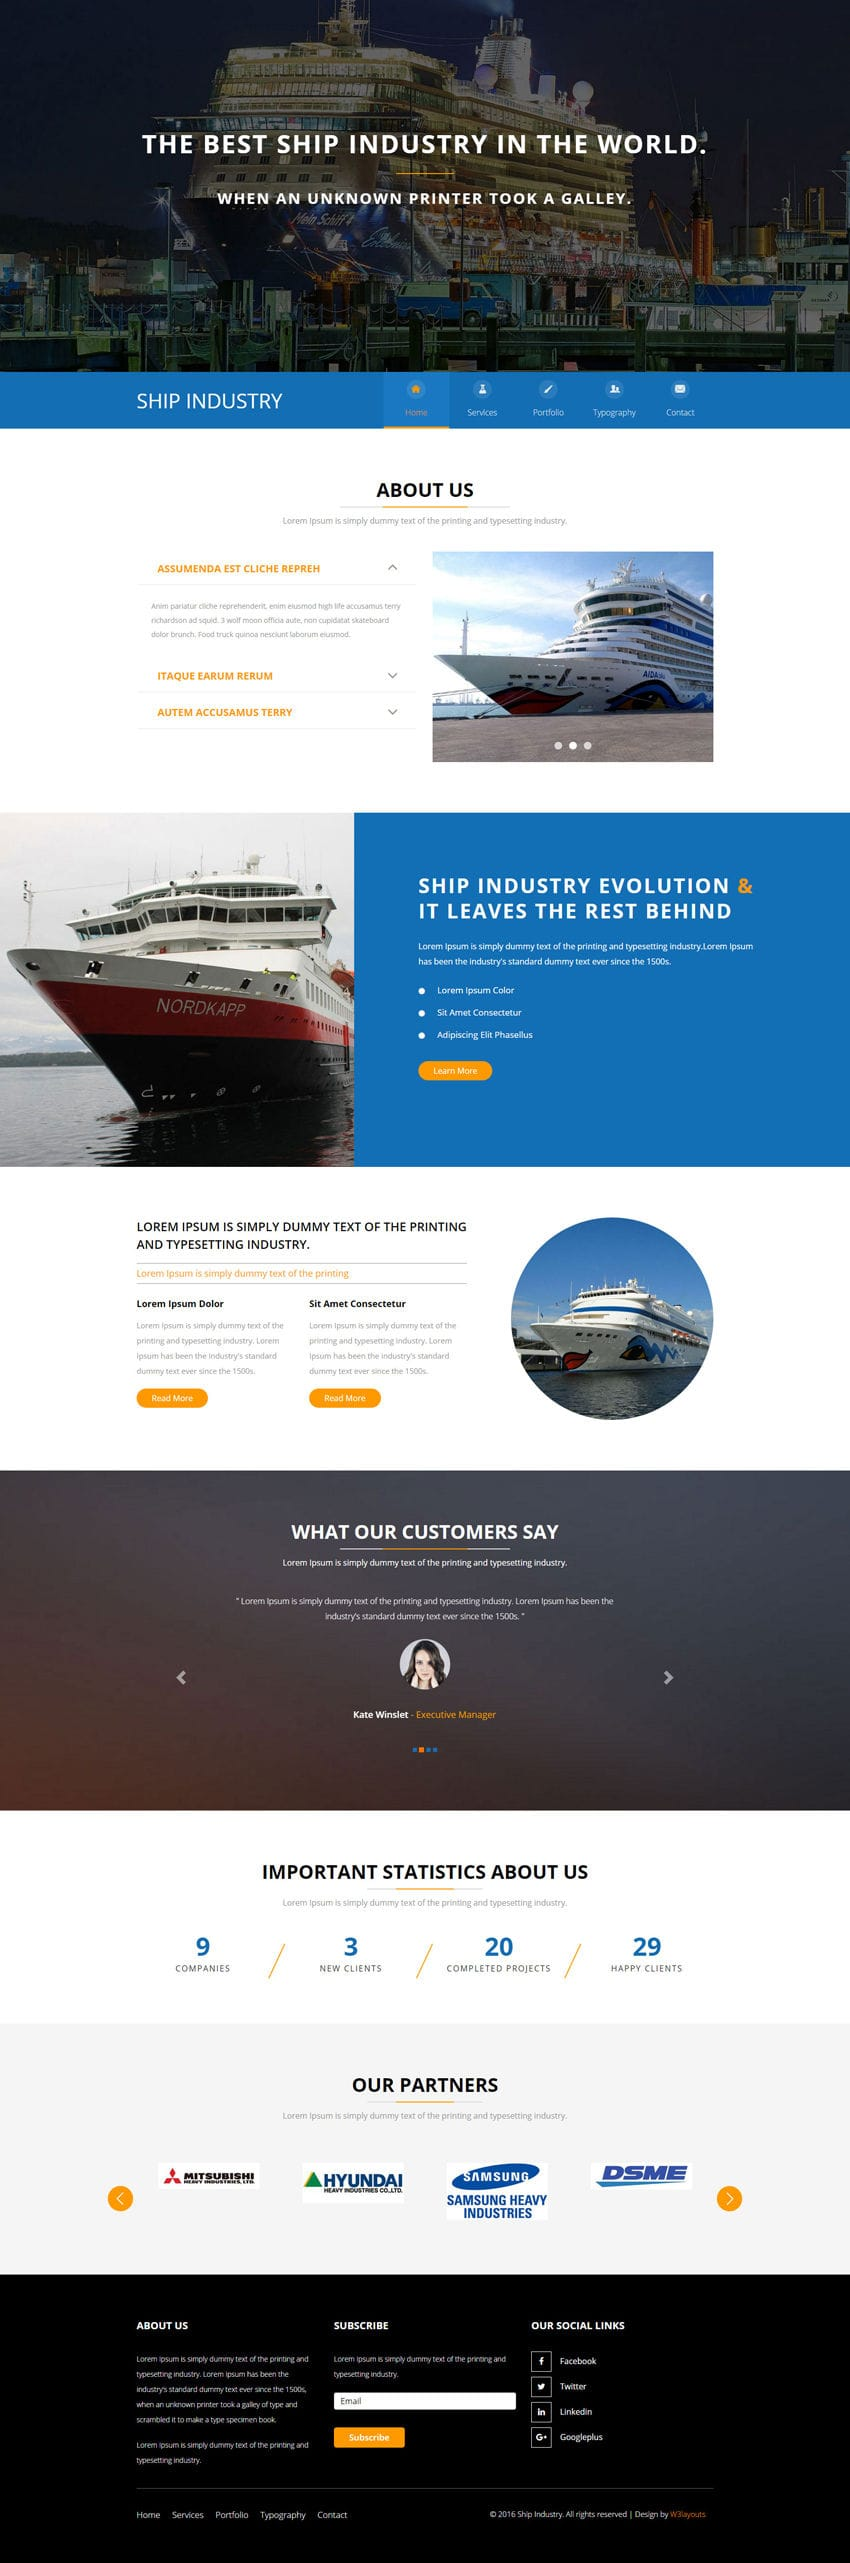 ship_industry-full-page-image-2016